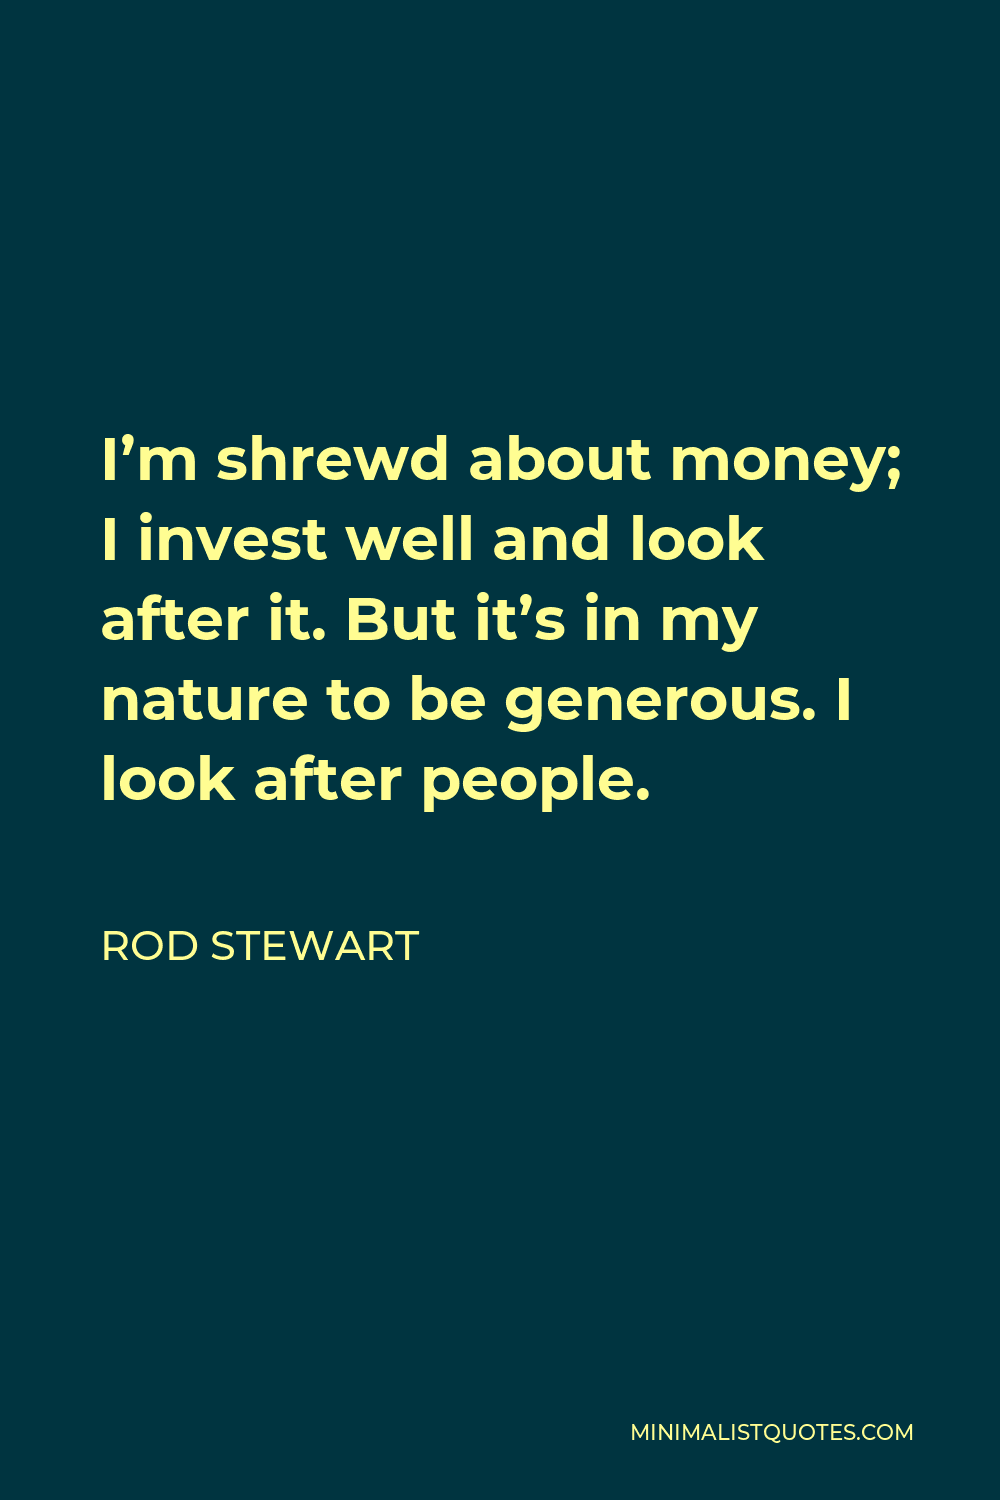 Rod Stewart Quote - I'm shrewd about money; I invest well and look after it. But it's in my nature to be generous. I look after people.